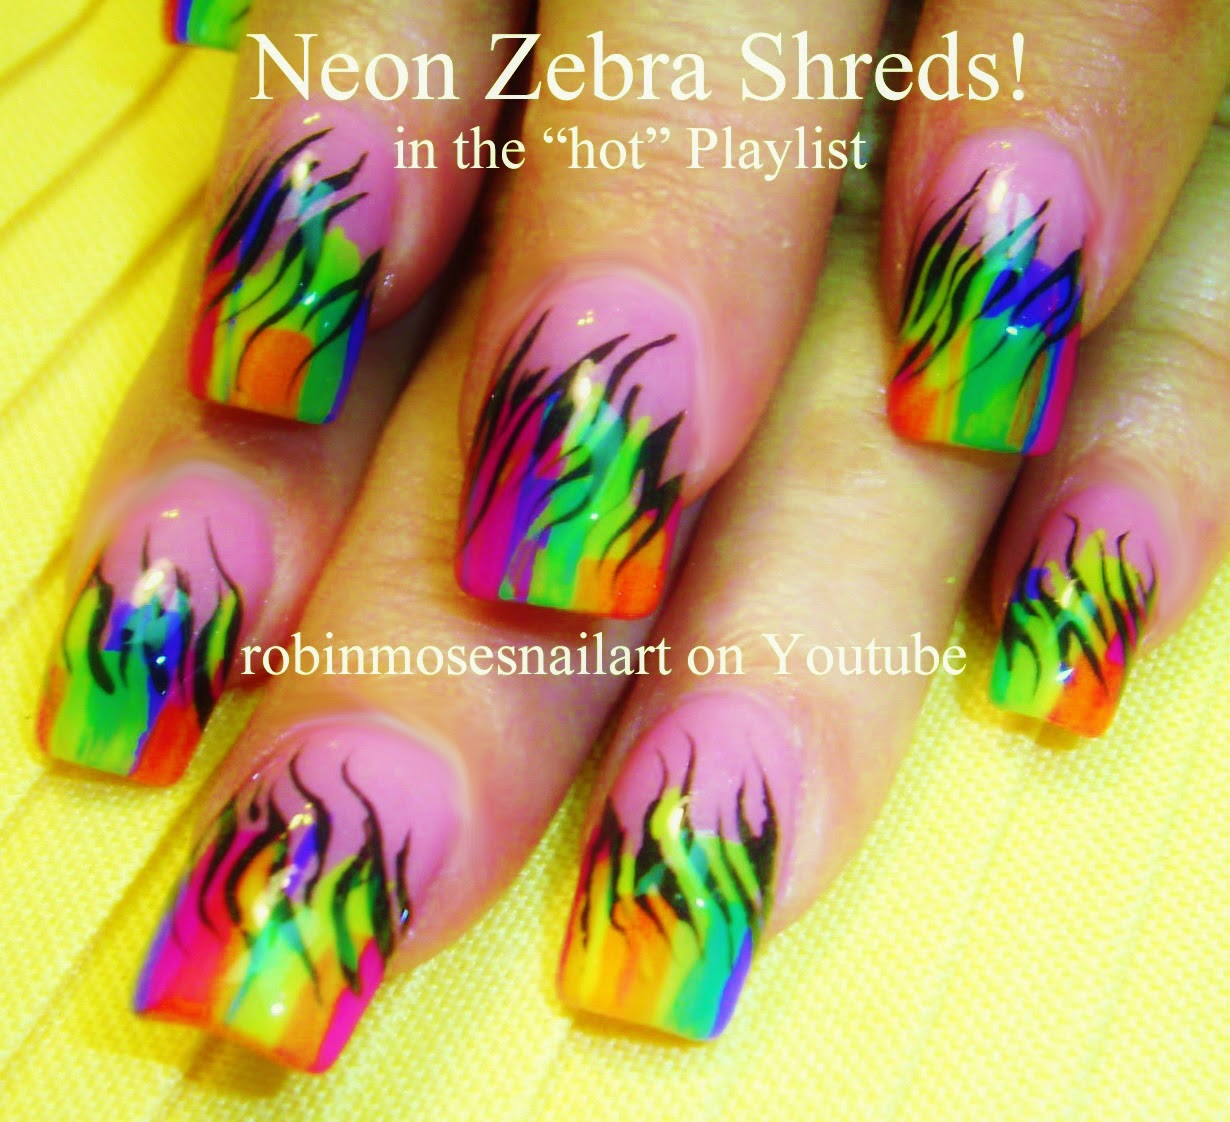 Robin Moses Nail Art February 2015: Nail Art By Robin Moses: February 2015